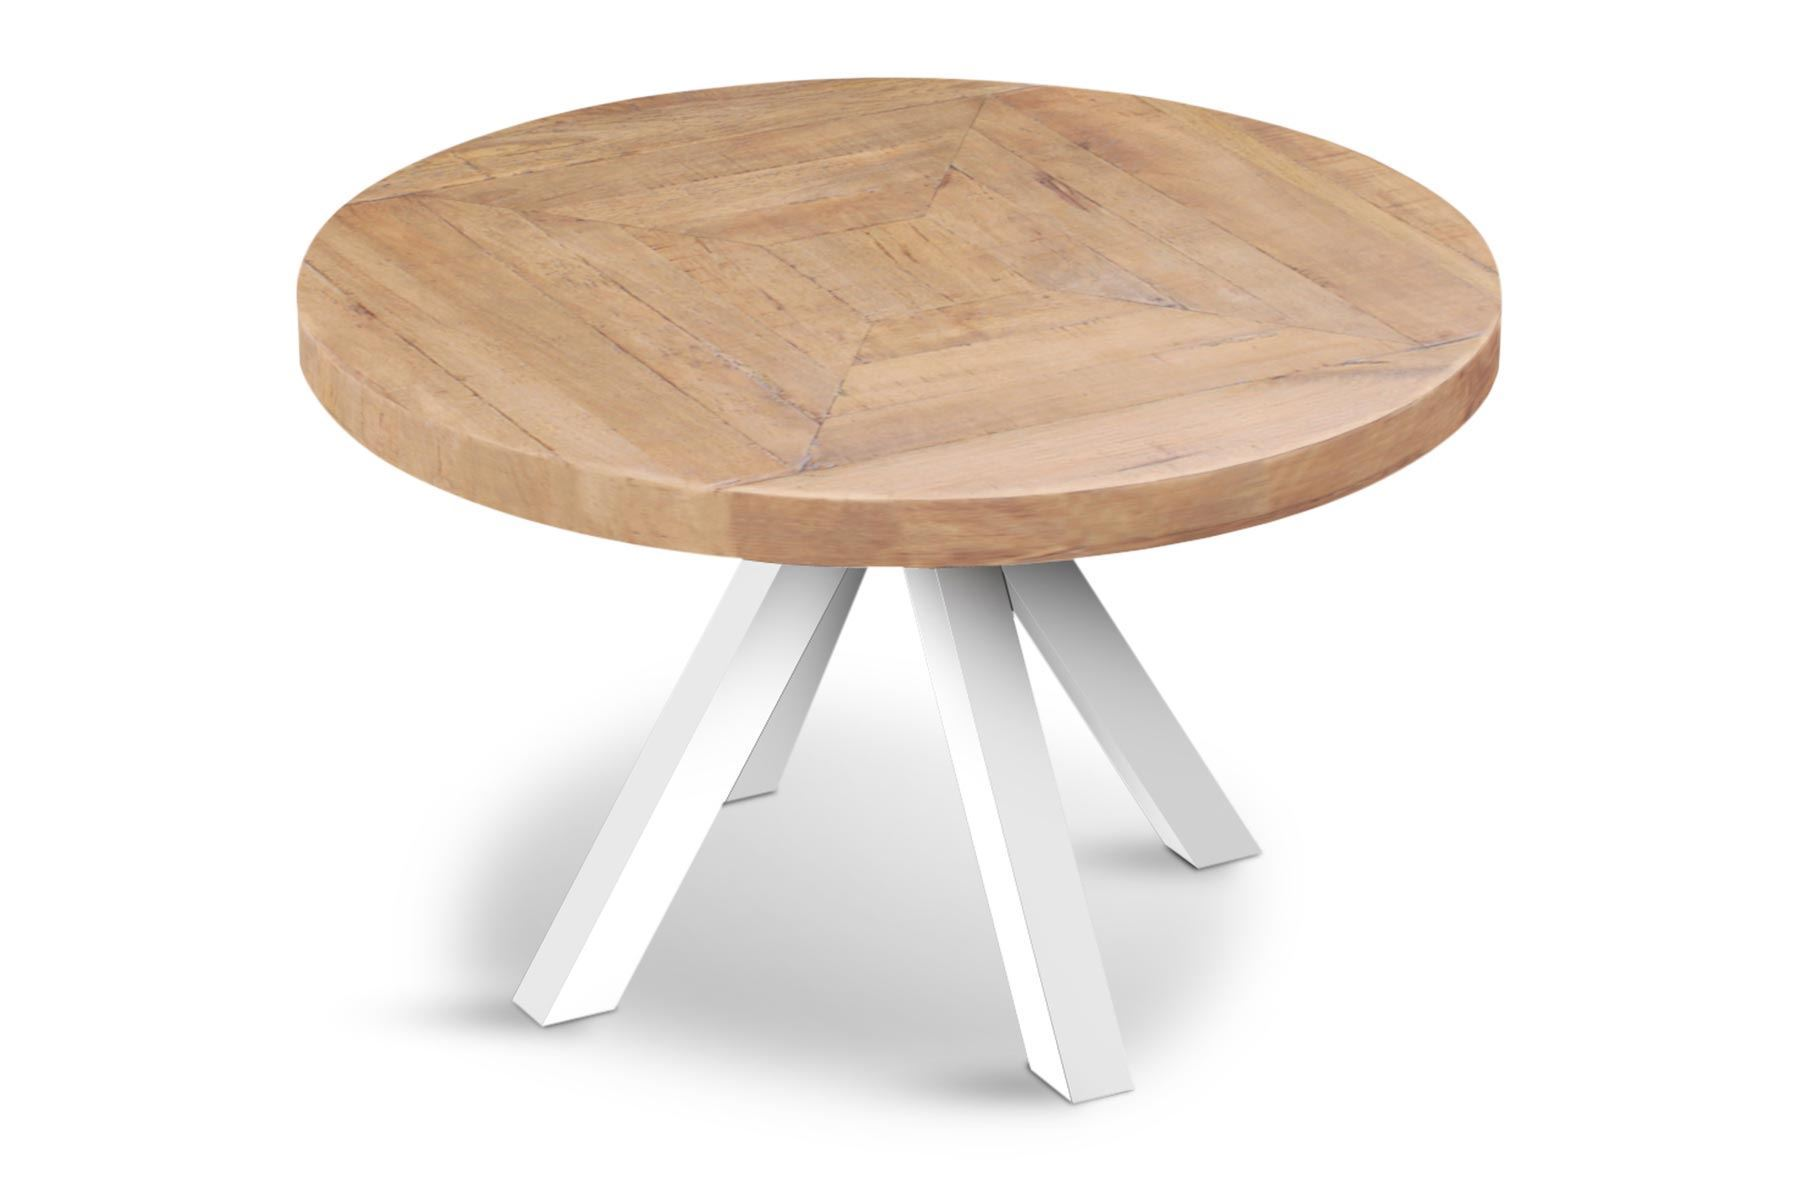 Sienna Round Dining Table Table Top & White Base